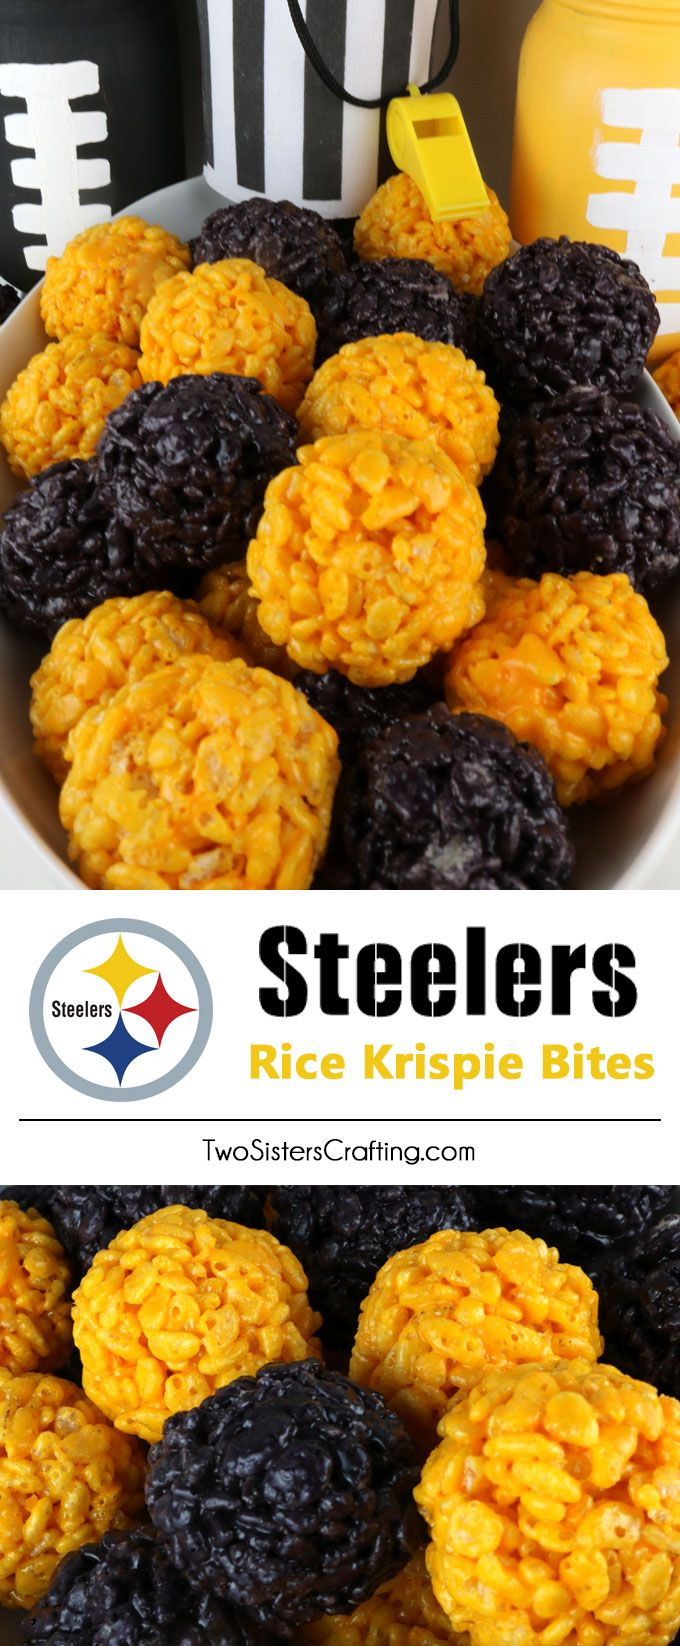 Pittsburgh Steelers Rice Krispie Bites -  Yummy, bite-sized balls of crunchy, marshmallow-y delight.  This is a Football dessert that is easy to make and even better to eat.  These colorful and festive Pittsburgh Steelers Treats are great for a game day football party, an NFL playoff party, a Super Bowl party or as a special snack for the Pittsburgh Steelers fans in your life. Go Steelers!  Follow us for more fun Superbowl Food Ideas.